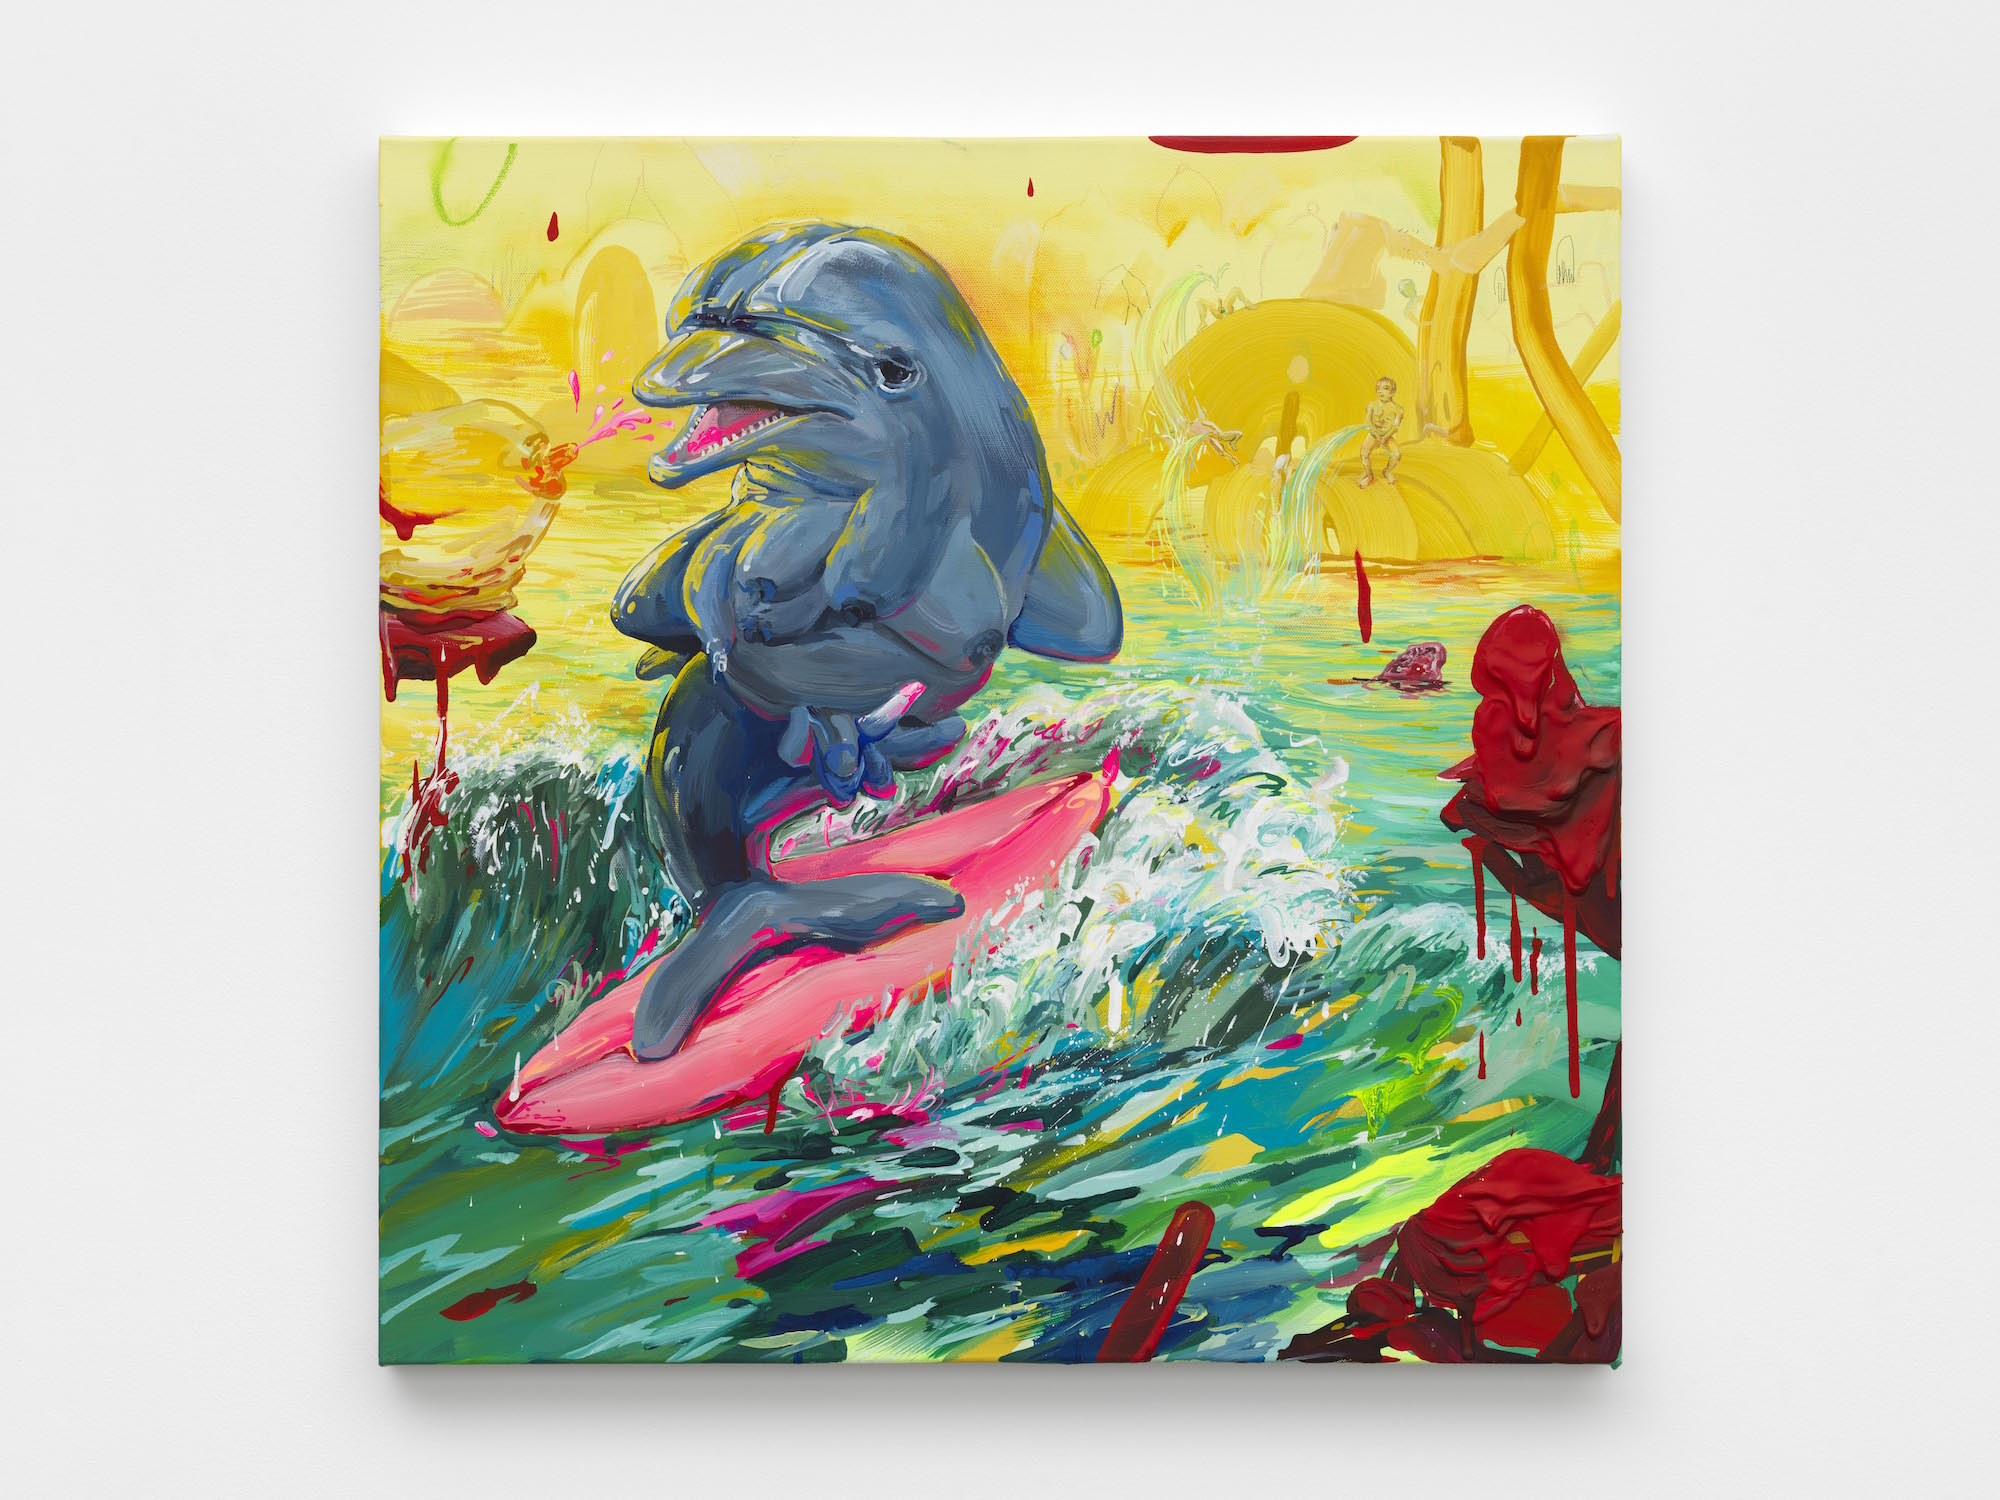 Image: This painting depicts a blue-grey dolphin standing on its tail fin surfing on a pink surfboard. The background is comprised of different hues of yellow, making the blue-green ocean and dolphin in the foreground stand out in contrast. Image courtesy of the artist.